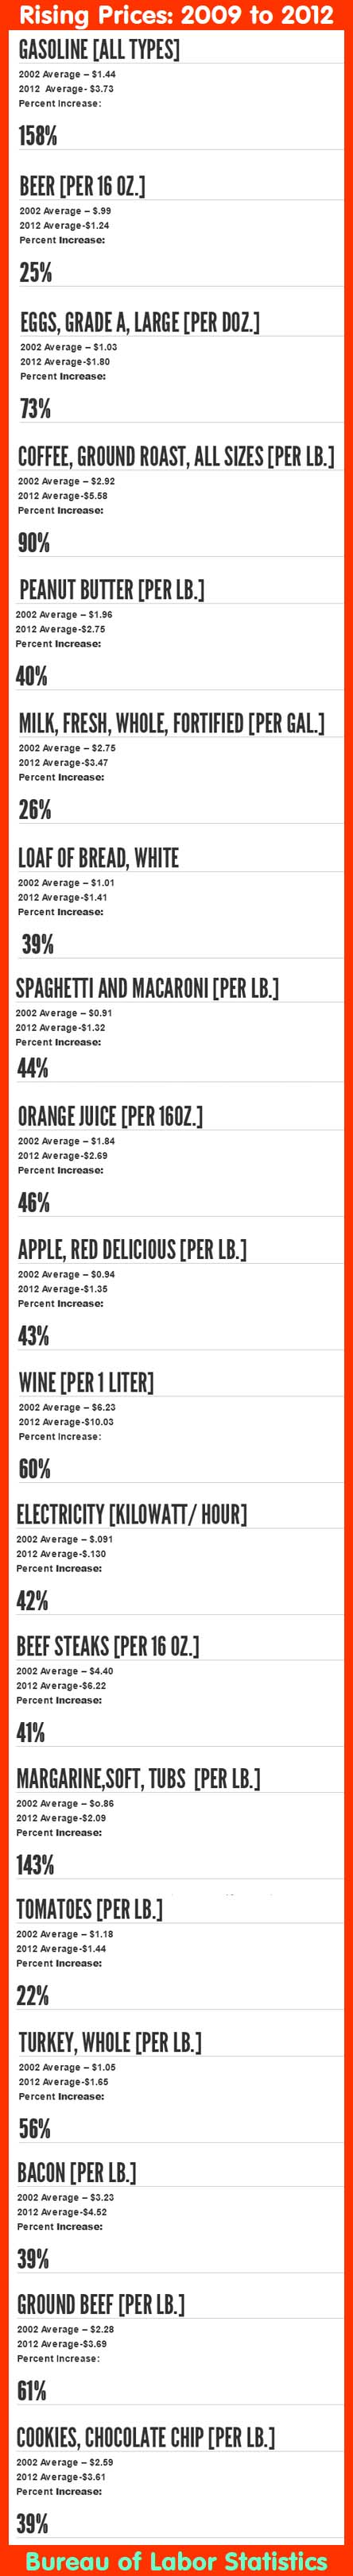 Rising Prices 2009 to 2012